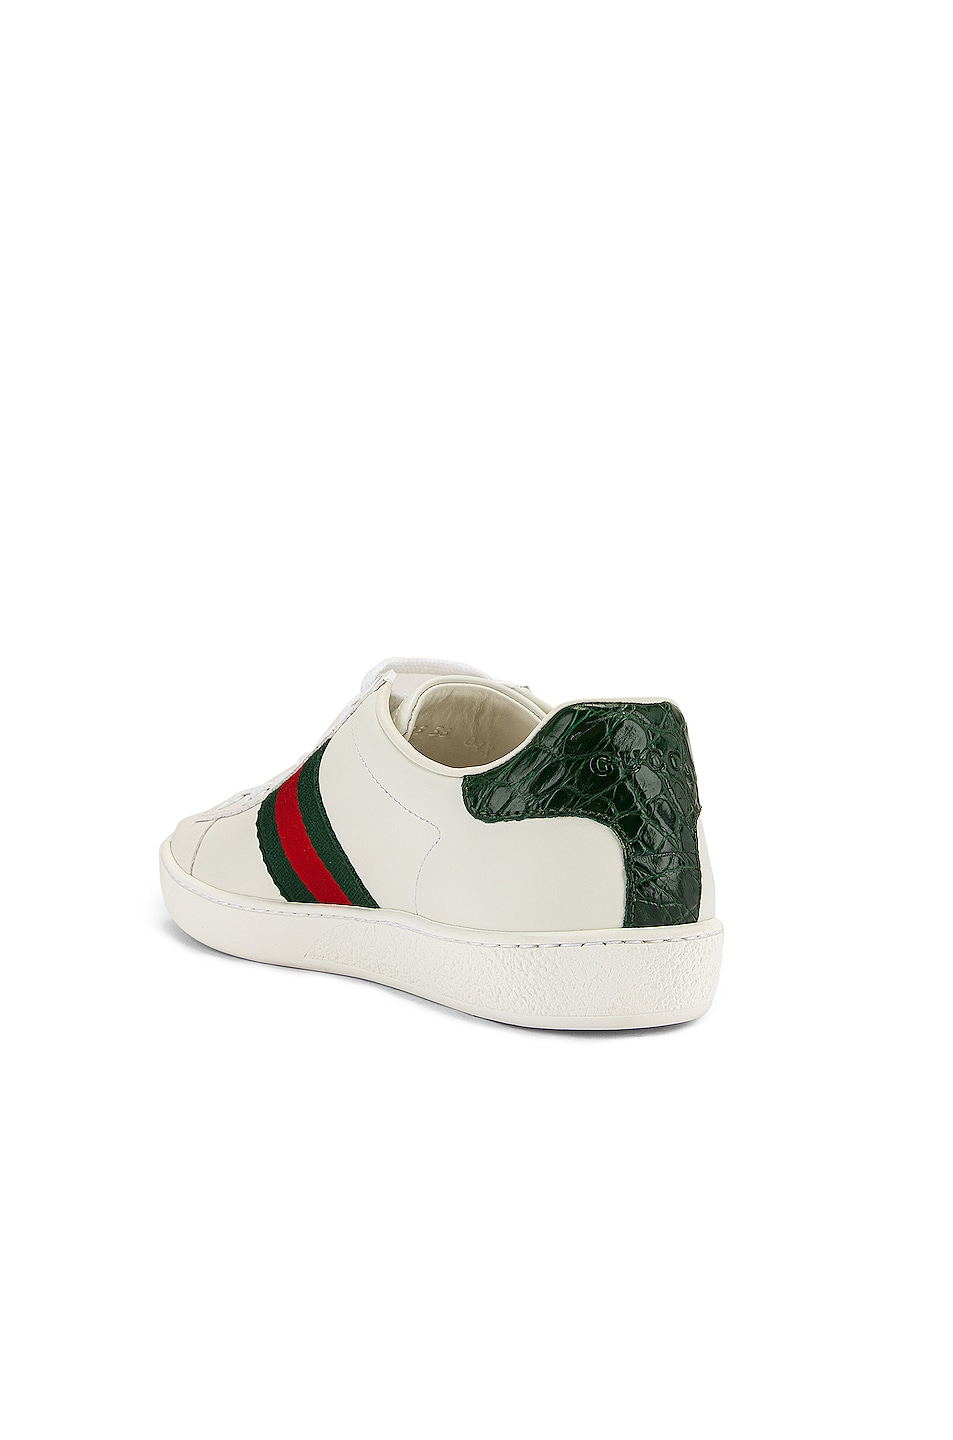 Image 3 of Gucci New Ace Basic Sneakers in White & Green